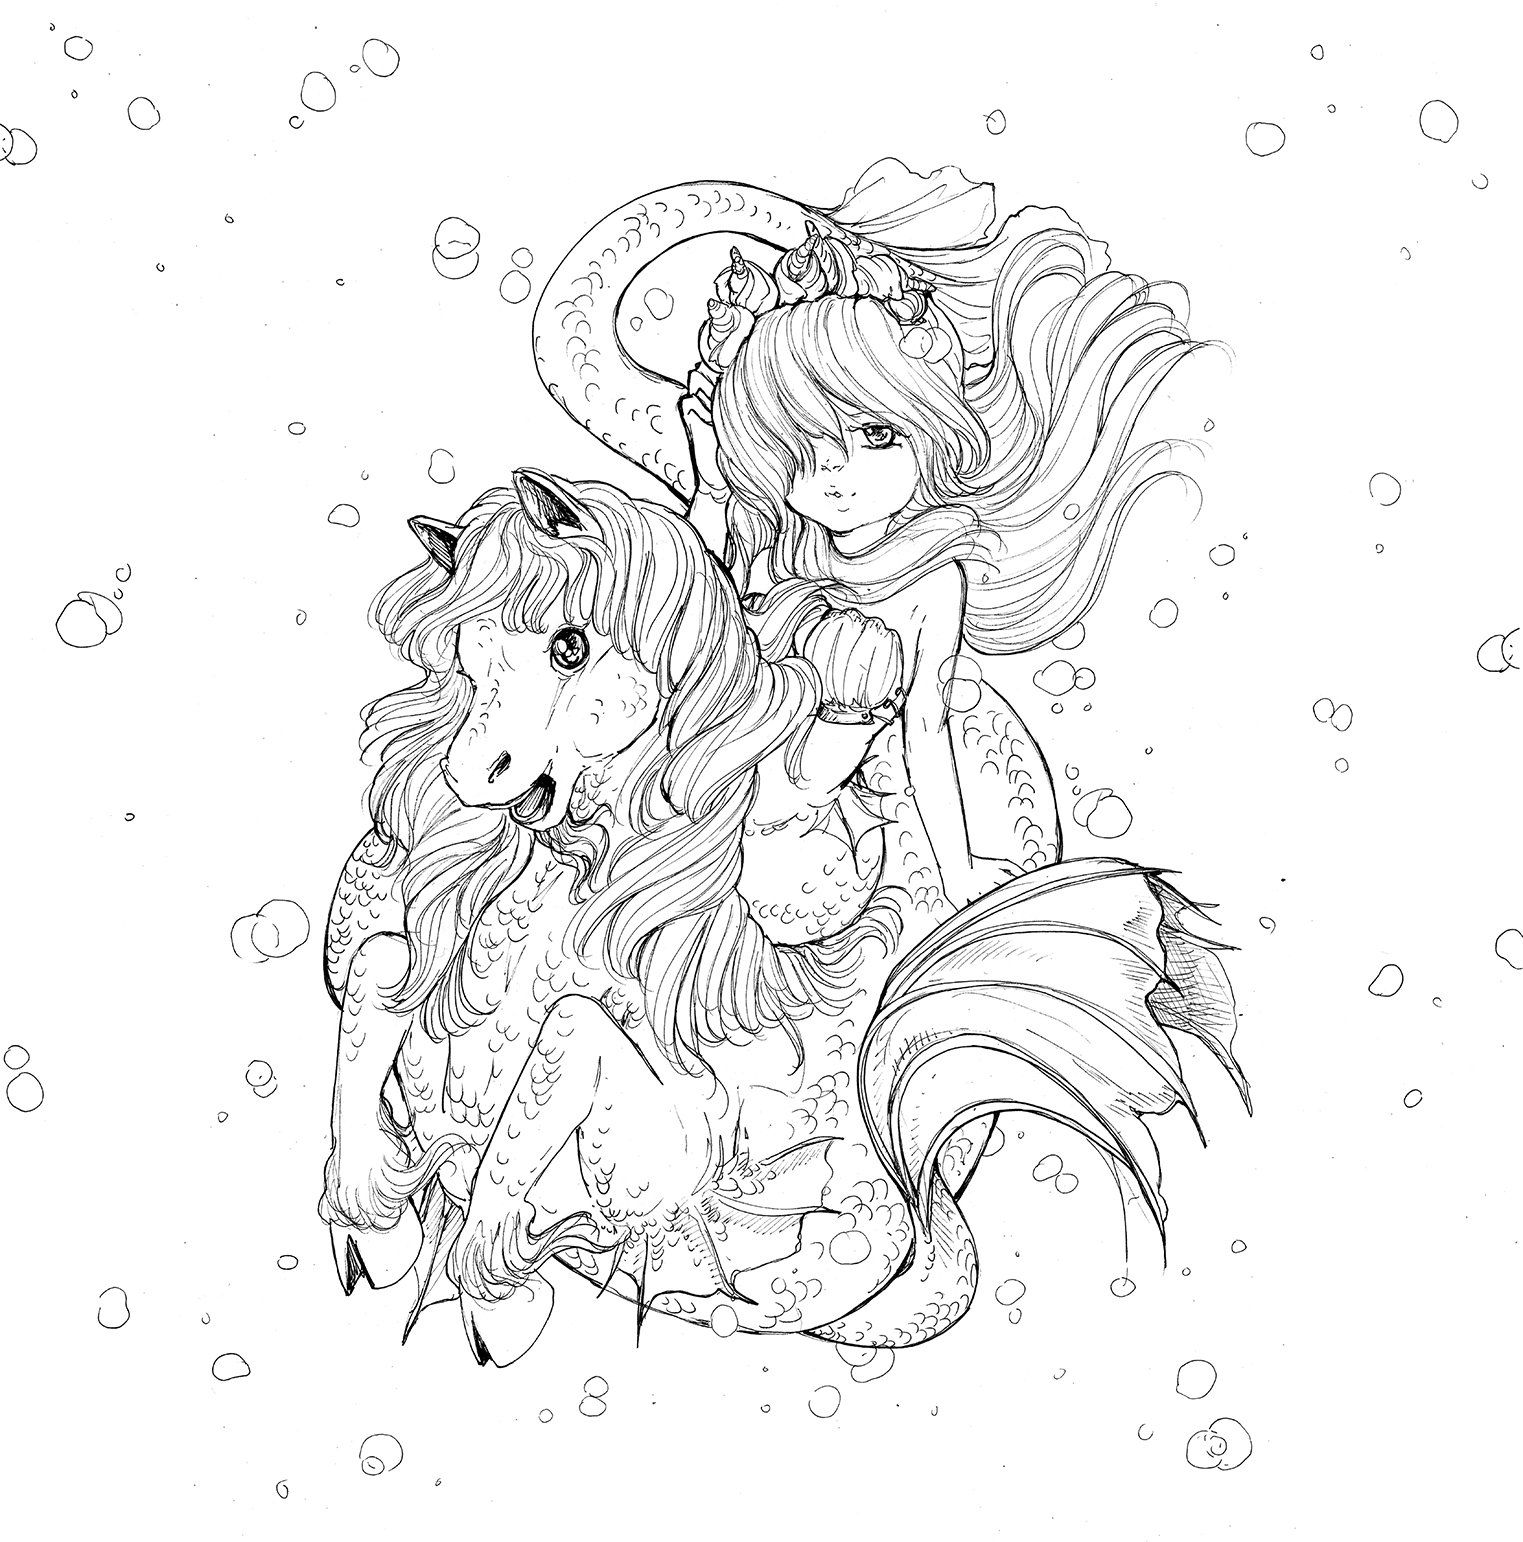 Pop Manga Mermaids And Other Sea Creatures Coloring Book Manga Coloring Book Mermaid Coloring Book Mermaid Coloring Pages